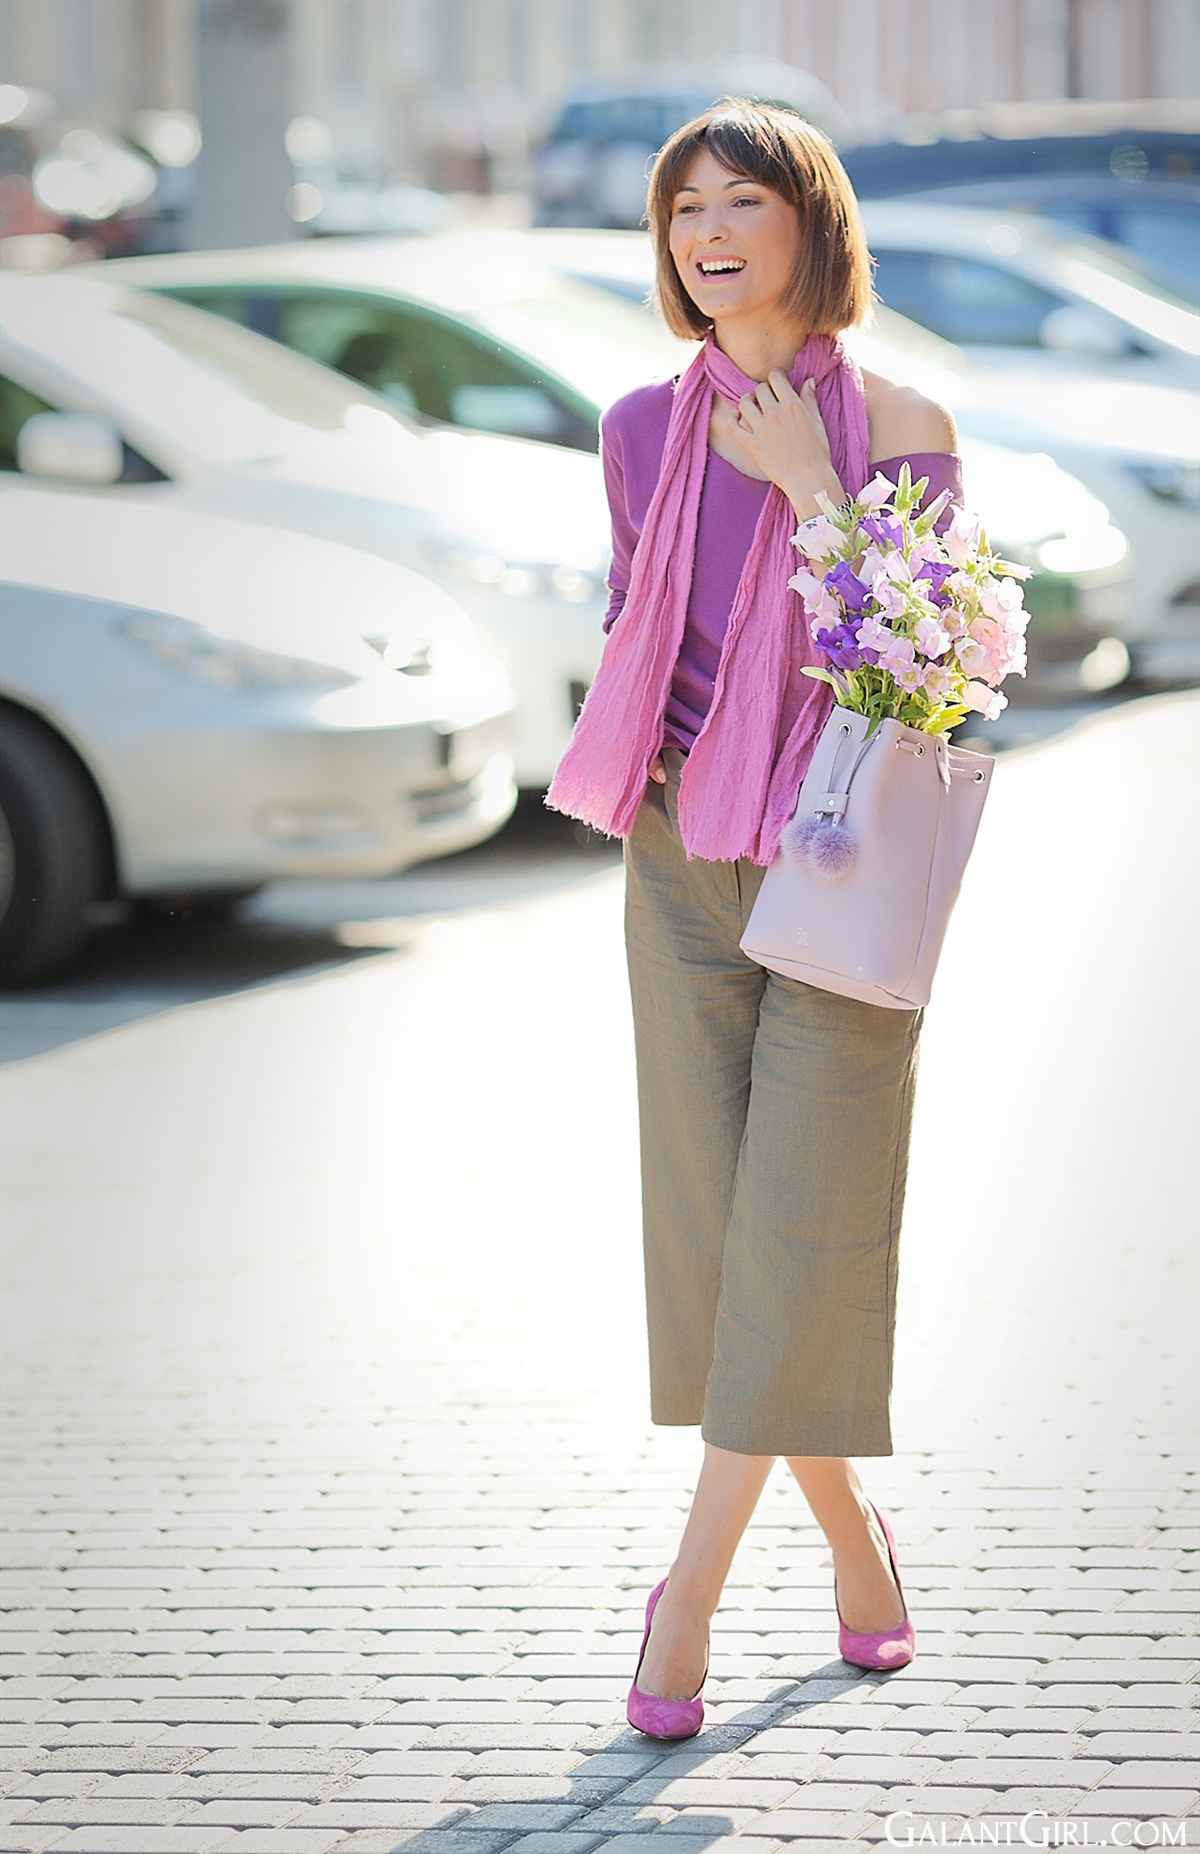 culottes-outfit-and-lilac-and-purple-outfit-with-off-shoulder-top